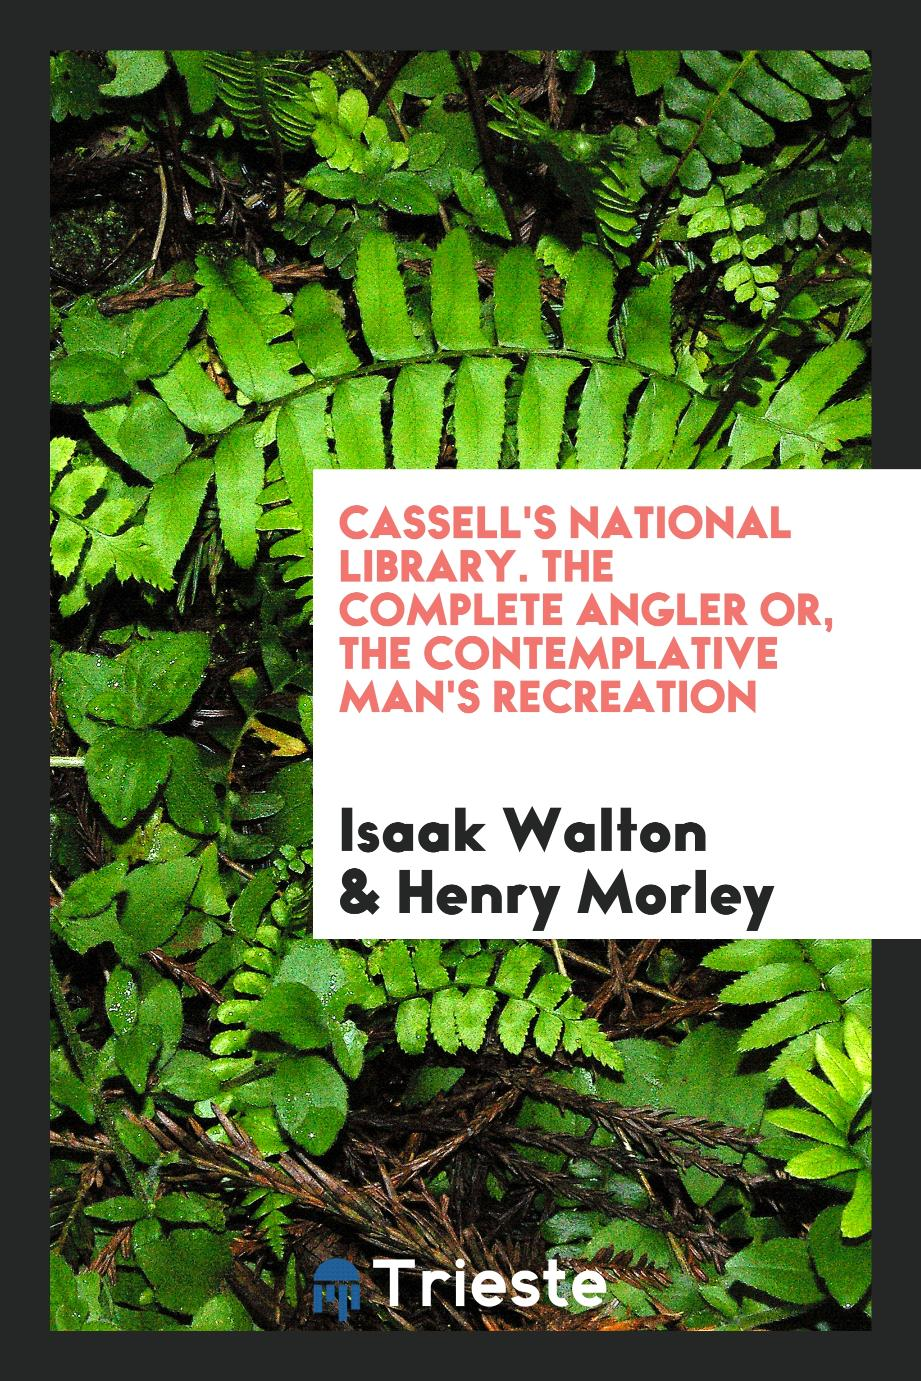 Cassell's National Library. The complete angler or, The contemplative man's recreation